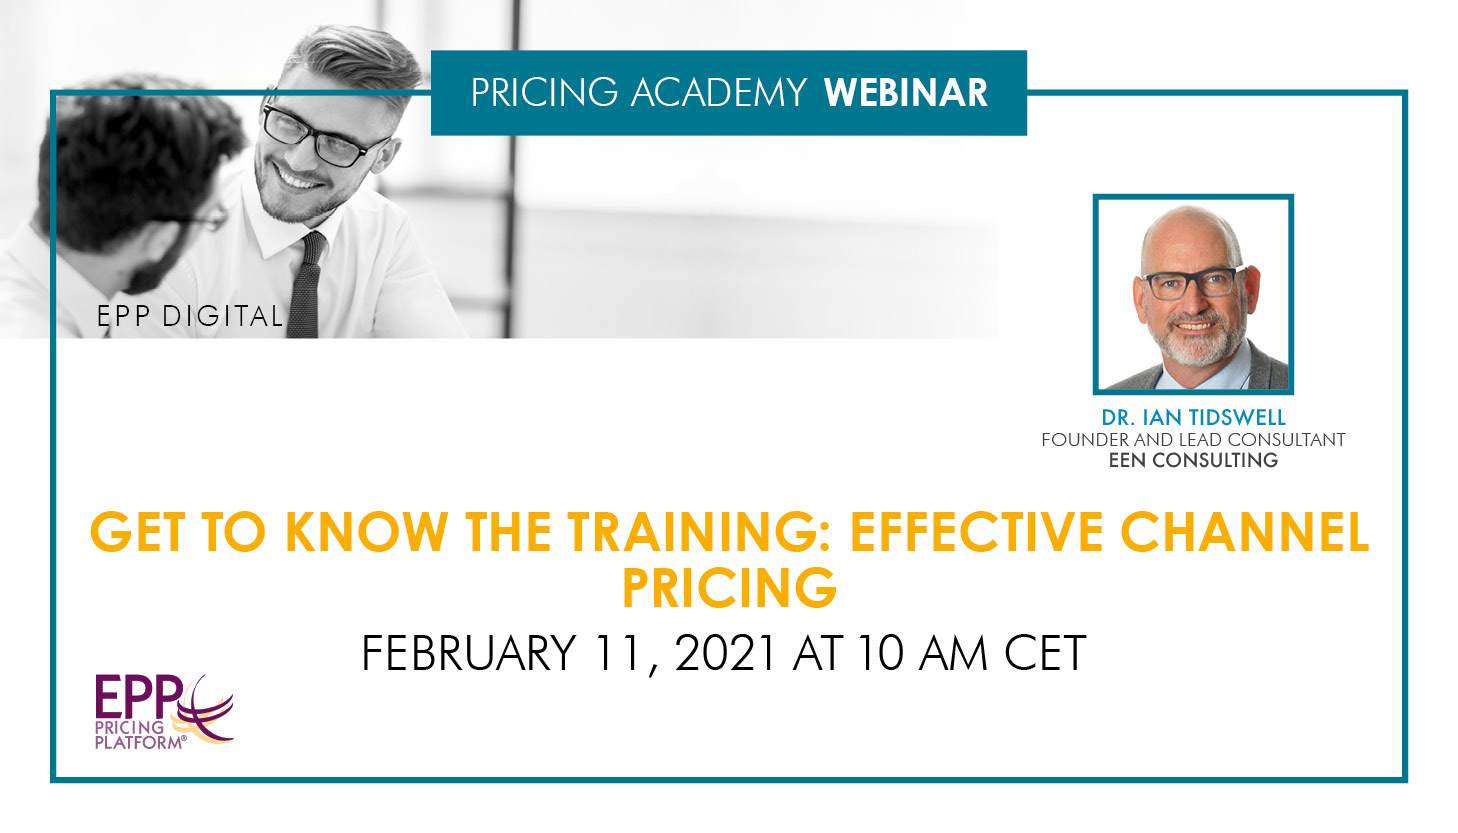 Get to know the training: Effective Channel Pricing